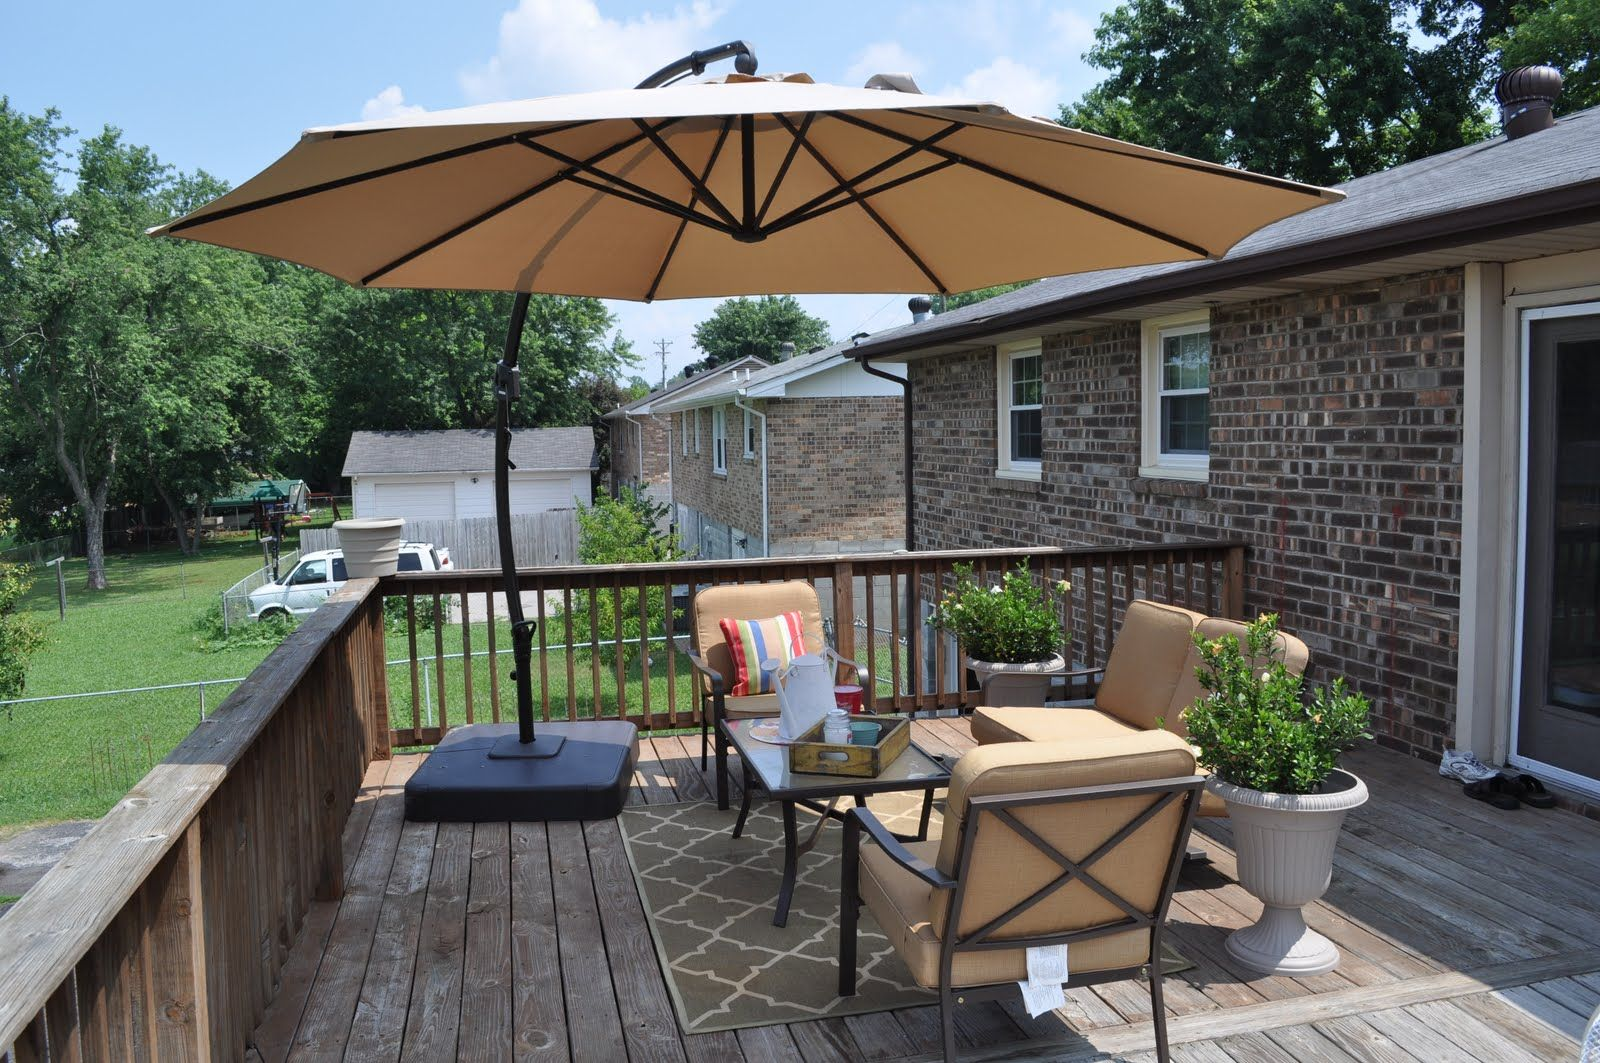 Cozy Seating With Deck Decorating Ideas Patio Umbrella And Patio